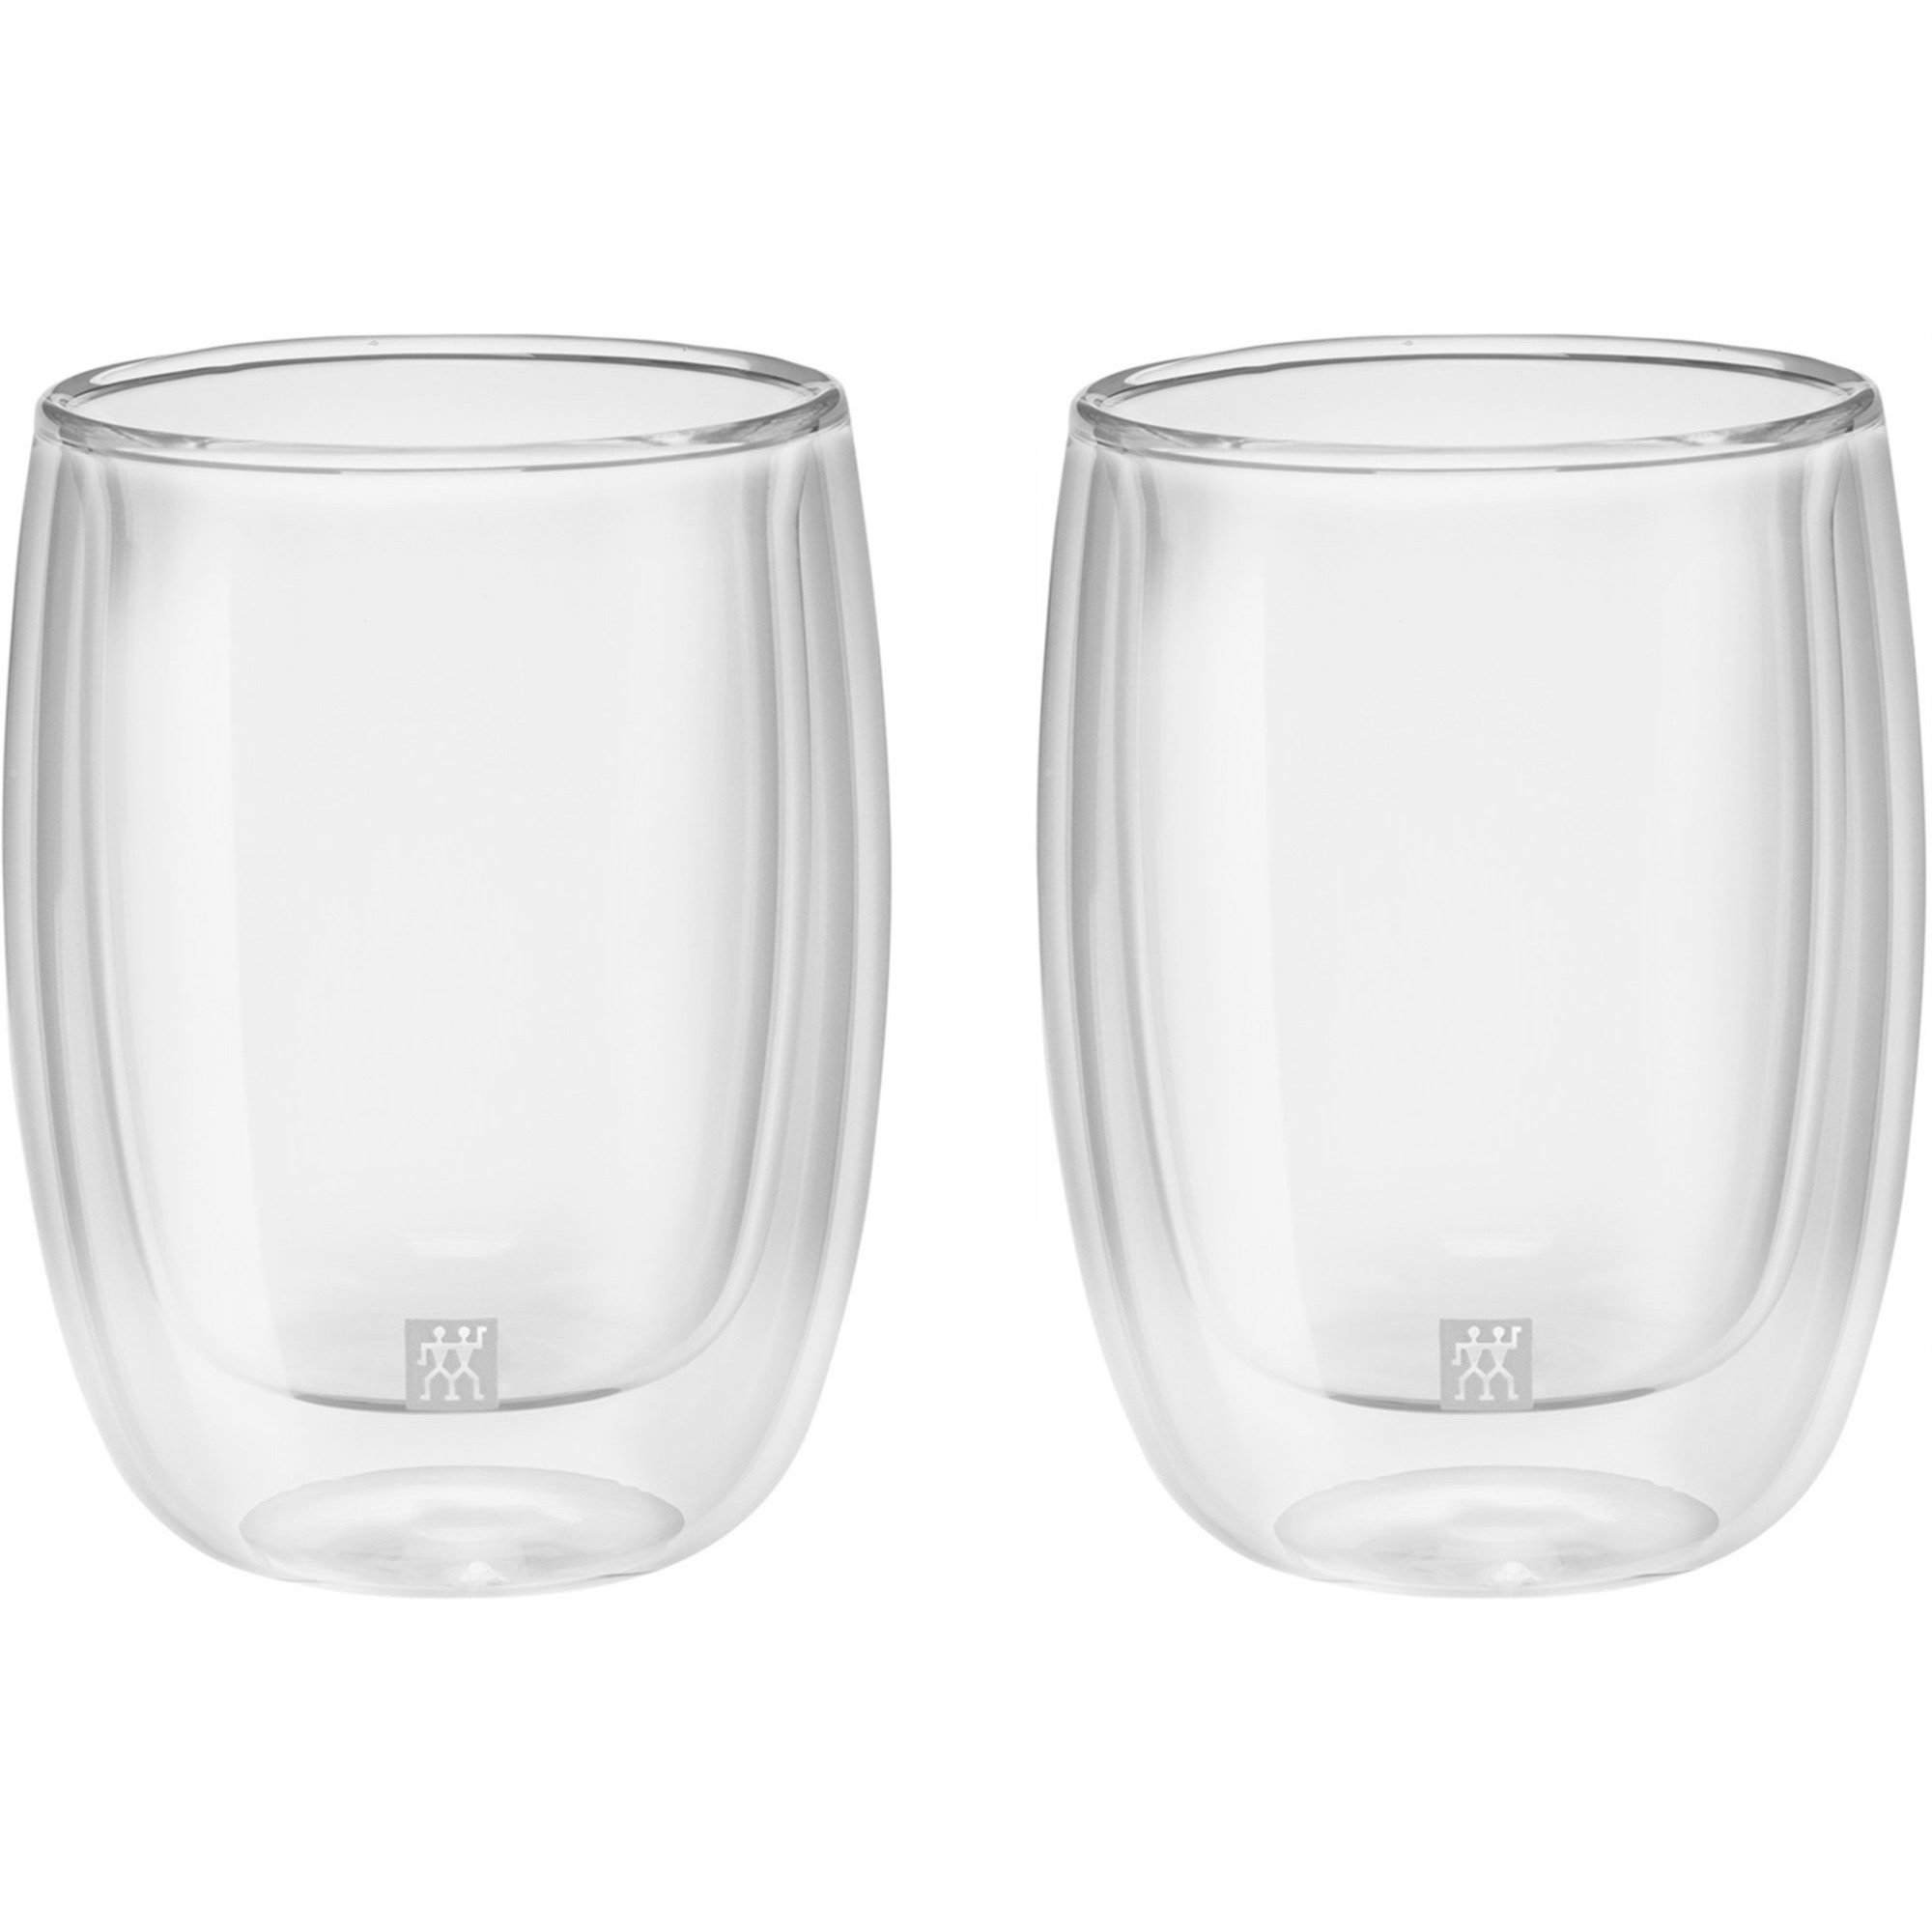 Zwilling Sorrento Kaffeglas 2- pack 200 ml